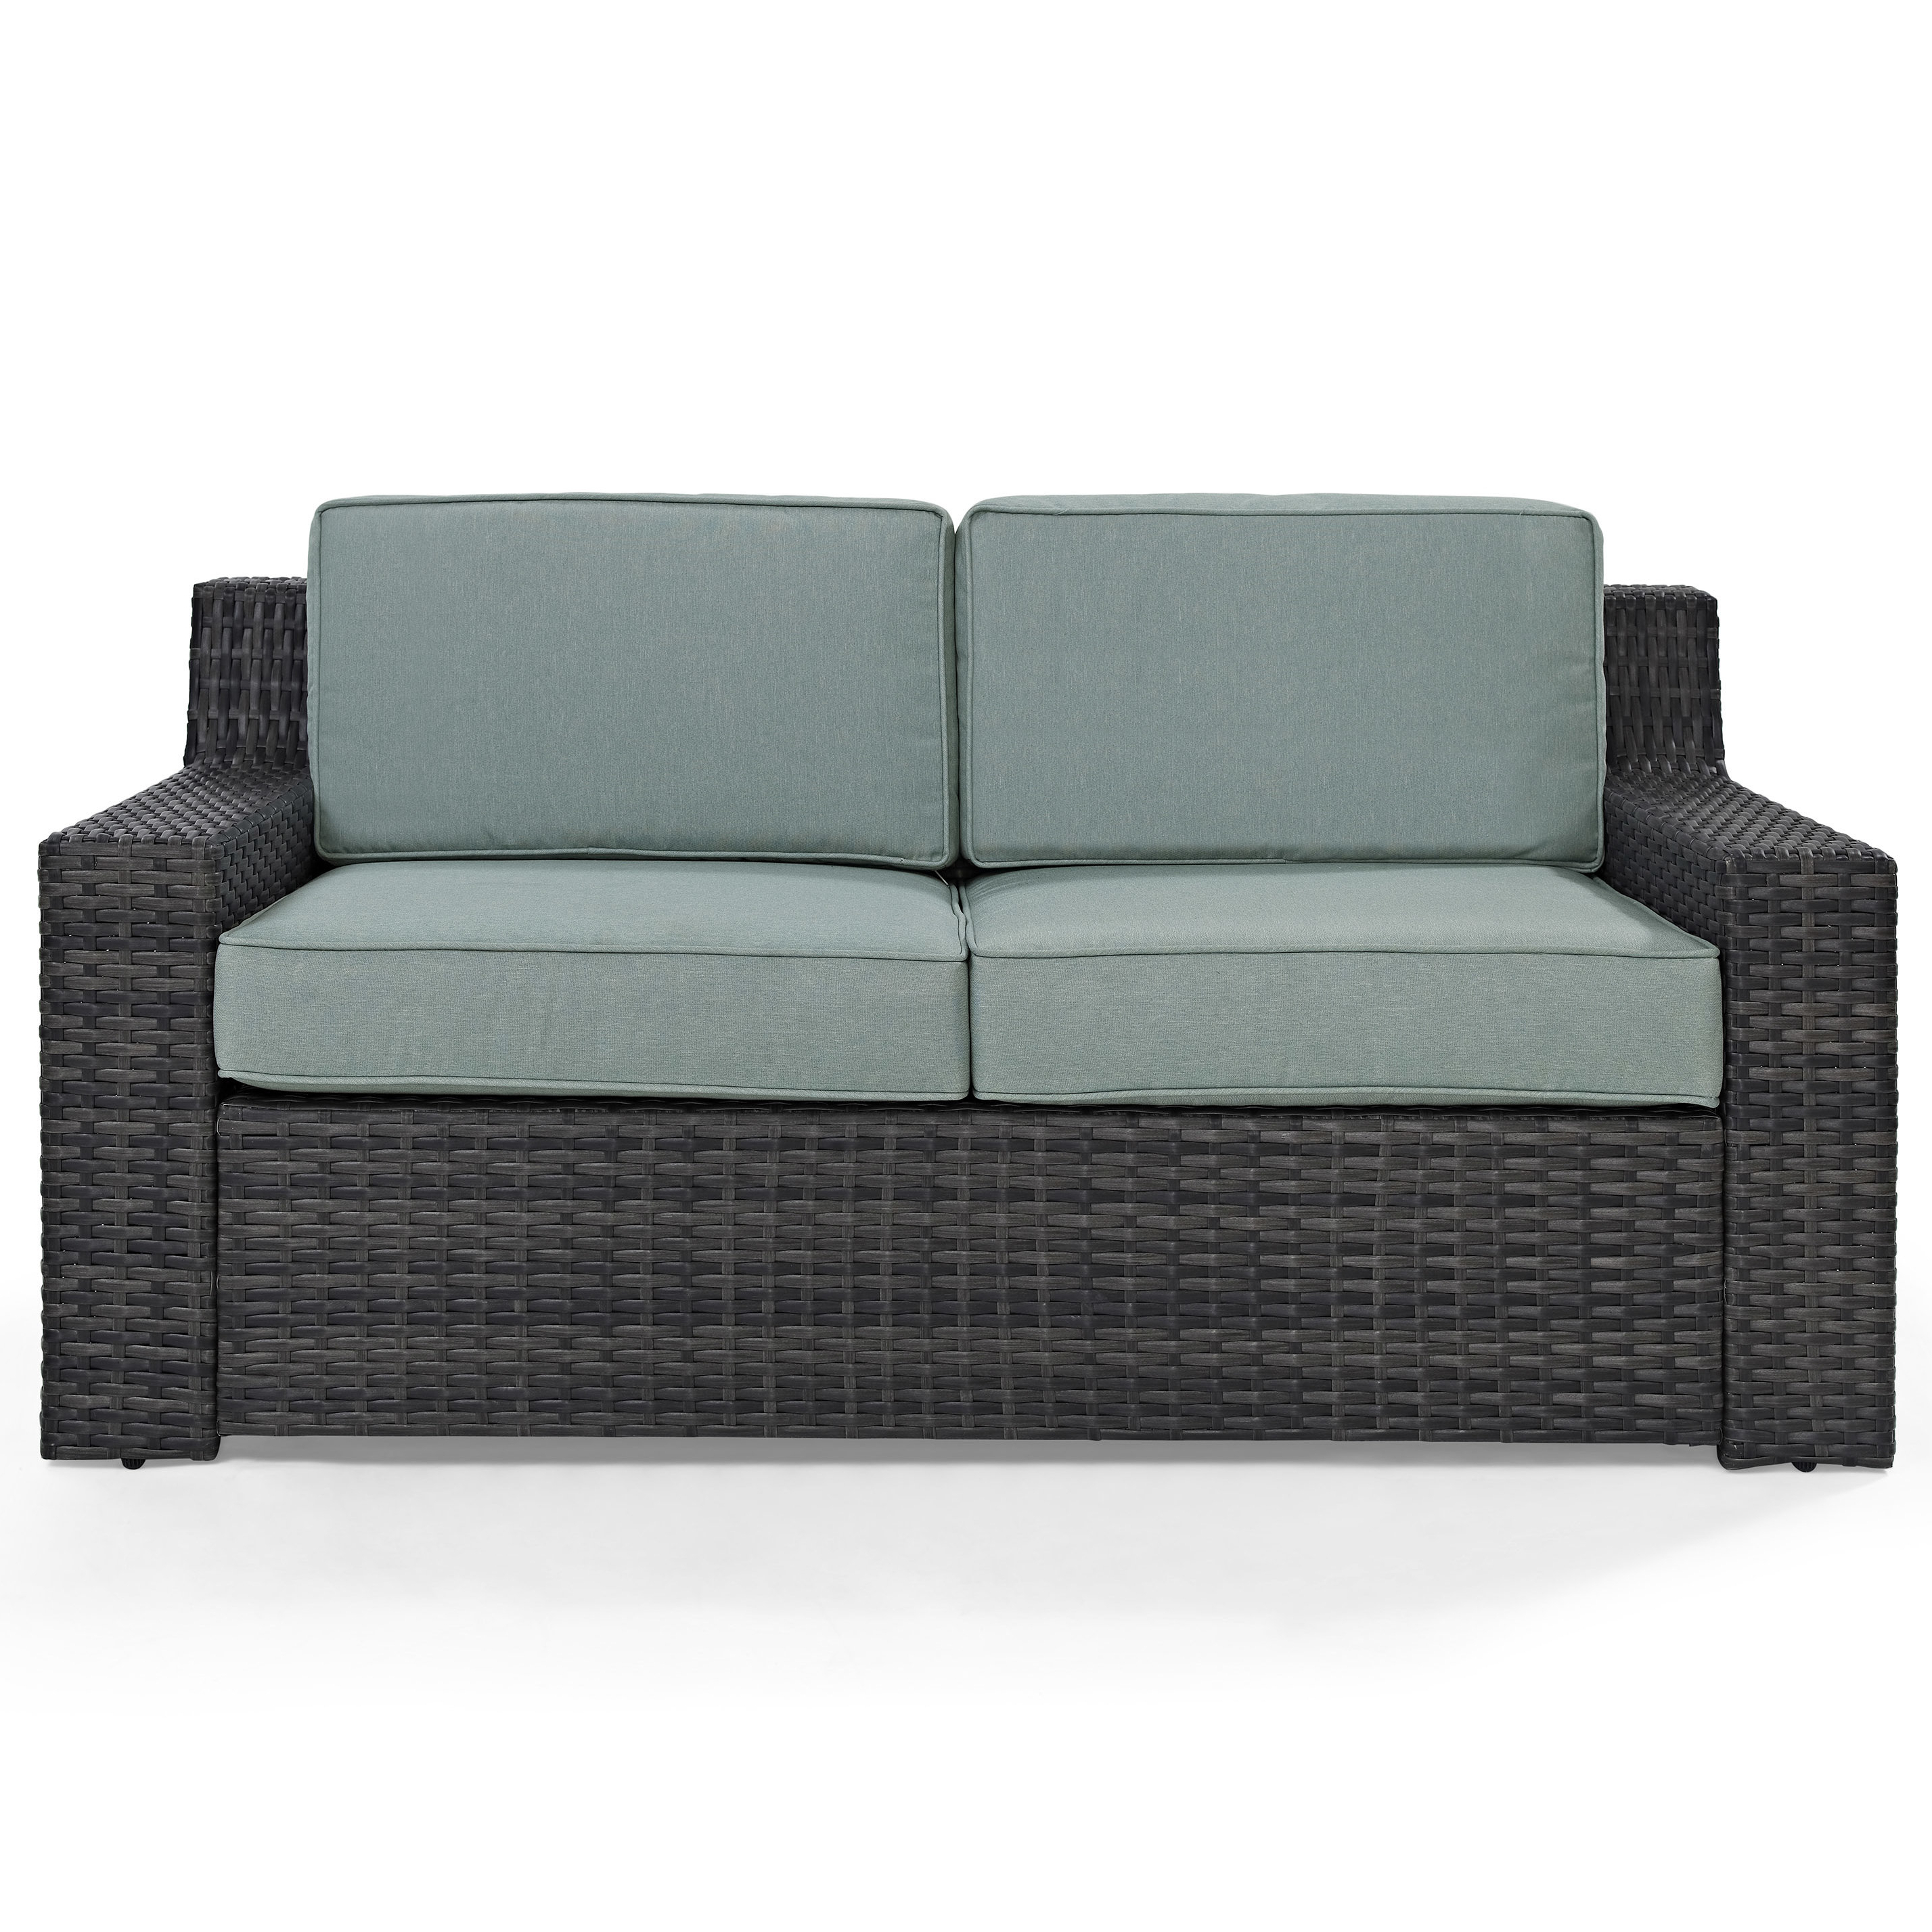 Mullenax Outdoor Loveseats With Cushions Throughout 2019 Linwood Loveseat With Cushions (View 5 of 20)